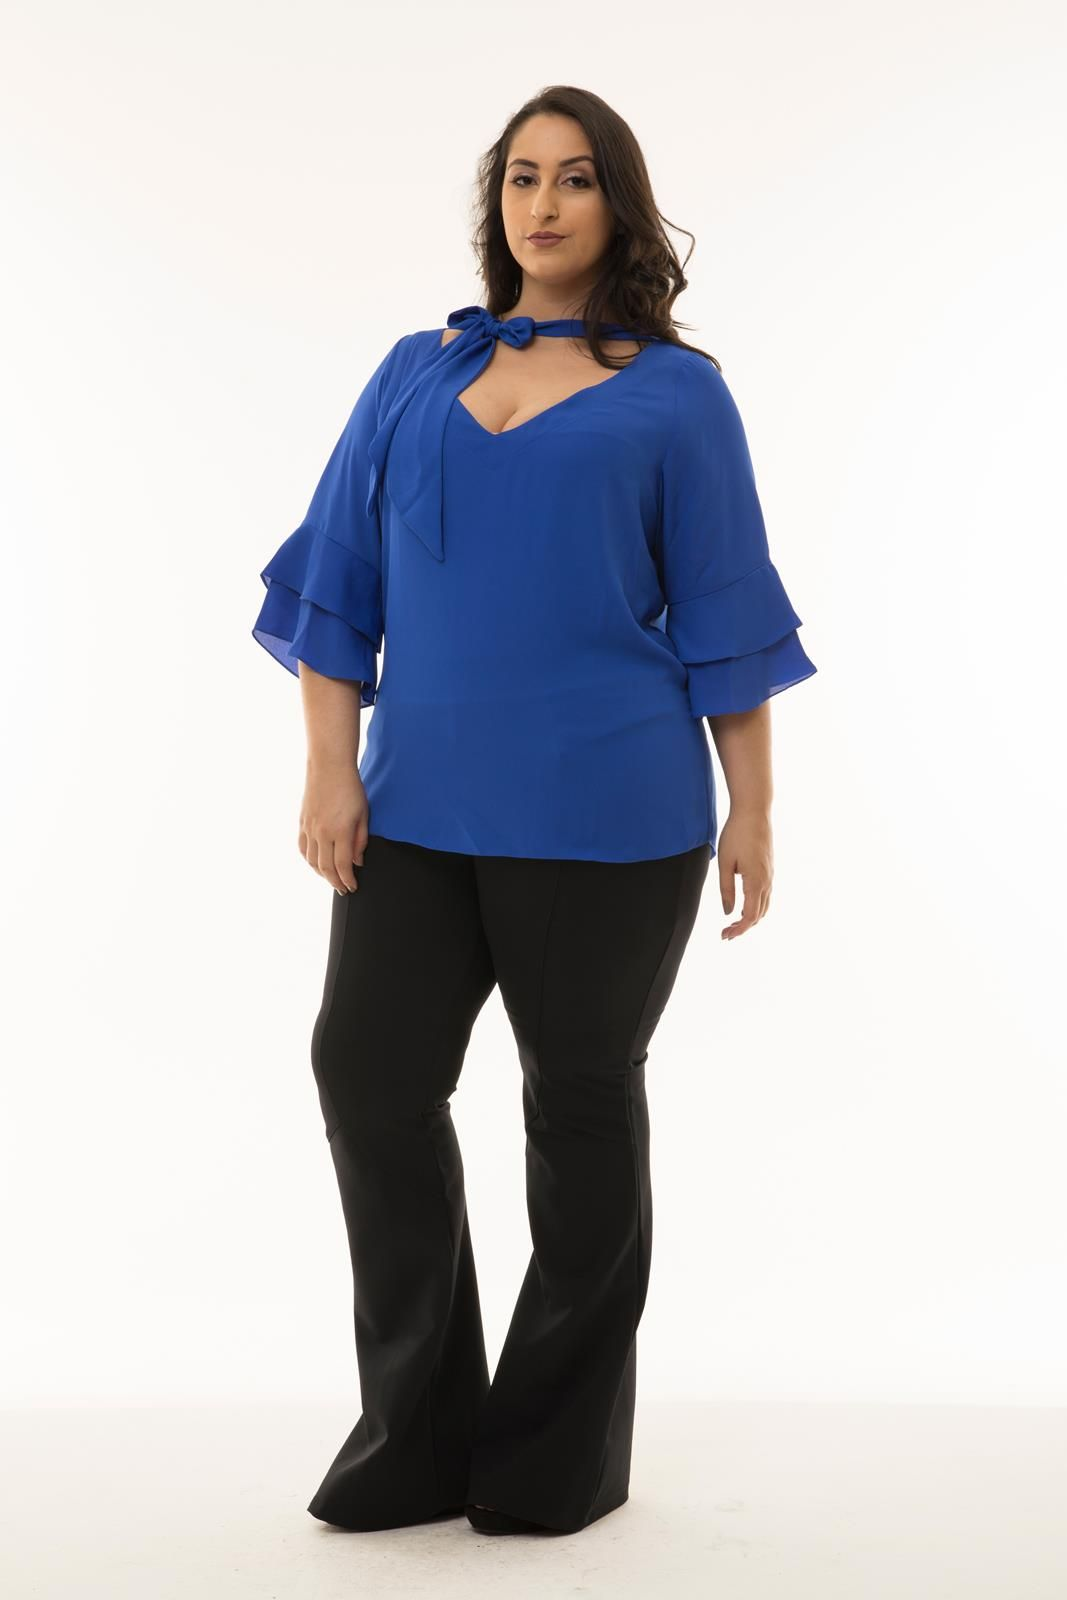 Blusa Plus Size azul royal